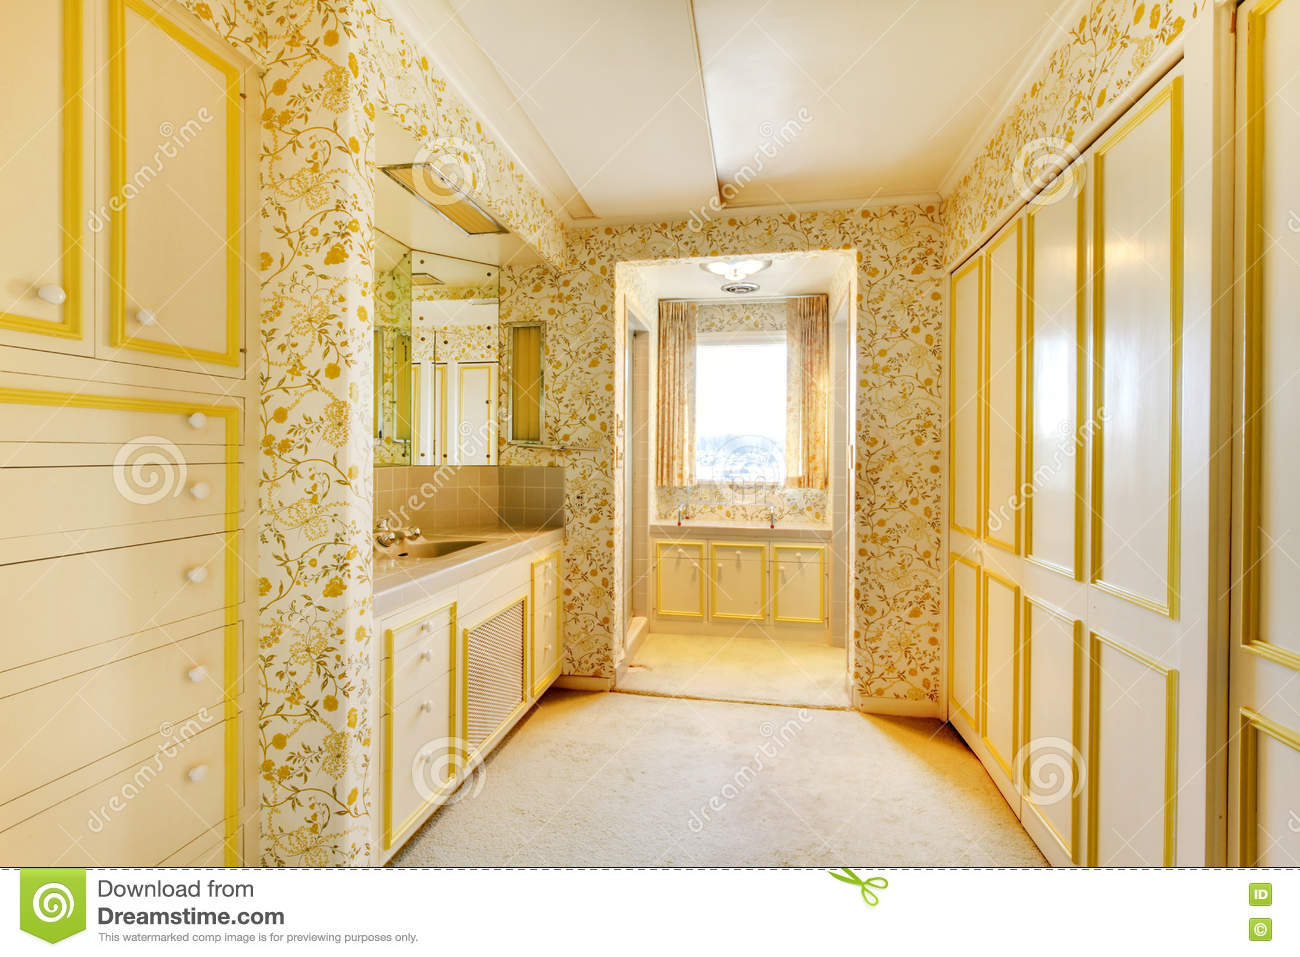 Old classic american house antique bathroom interior with for Classic american house interior